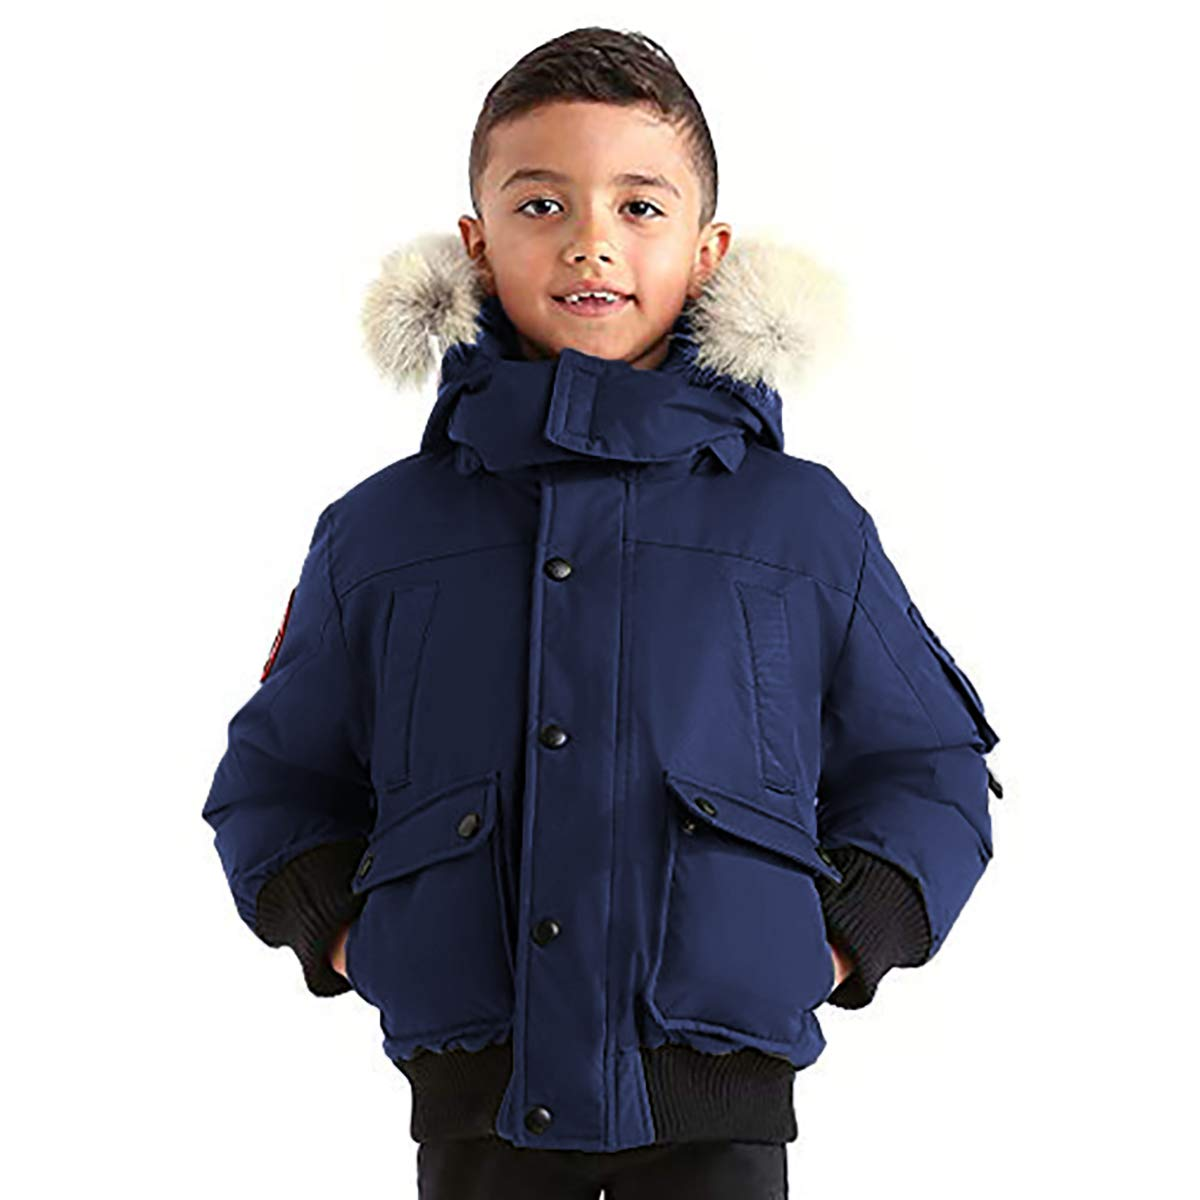 Triple F.A.T. Goose Grinnell Boys Down Jacket with Real Coyote Fur (7, Navy)